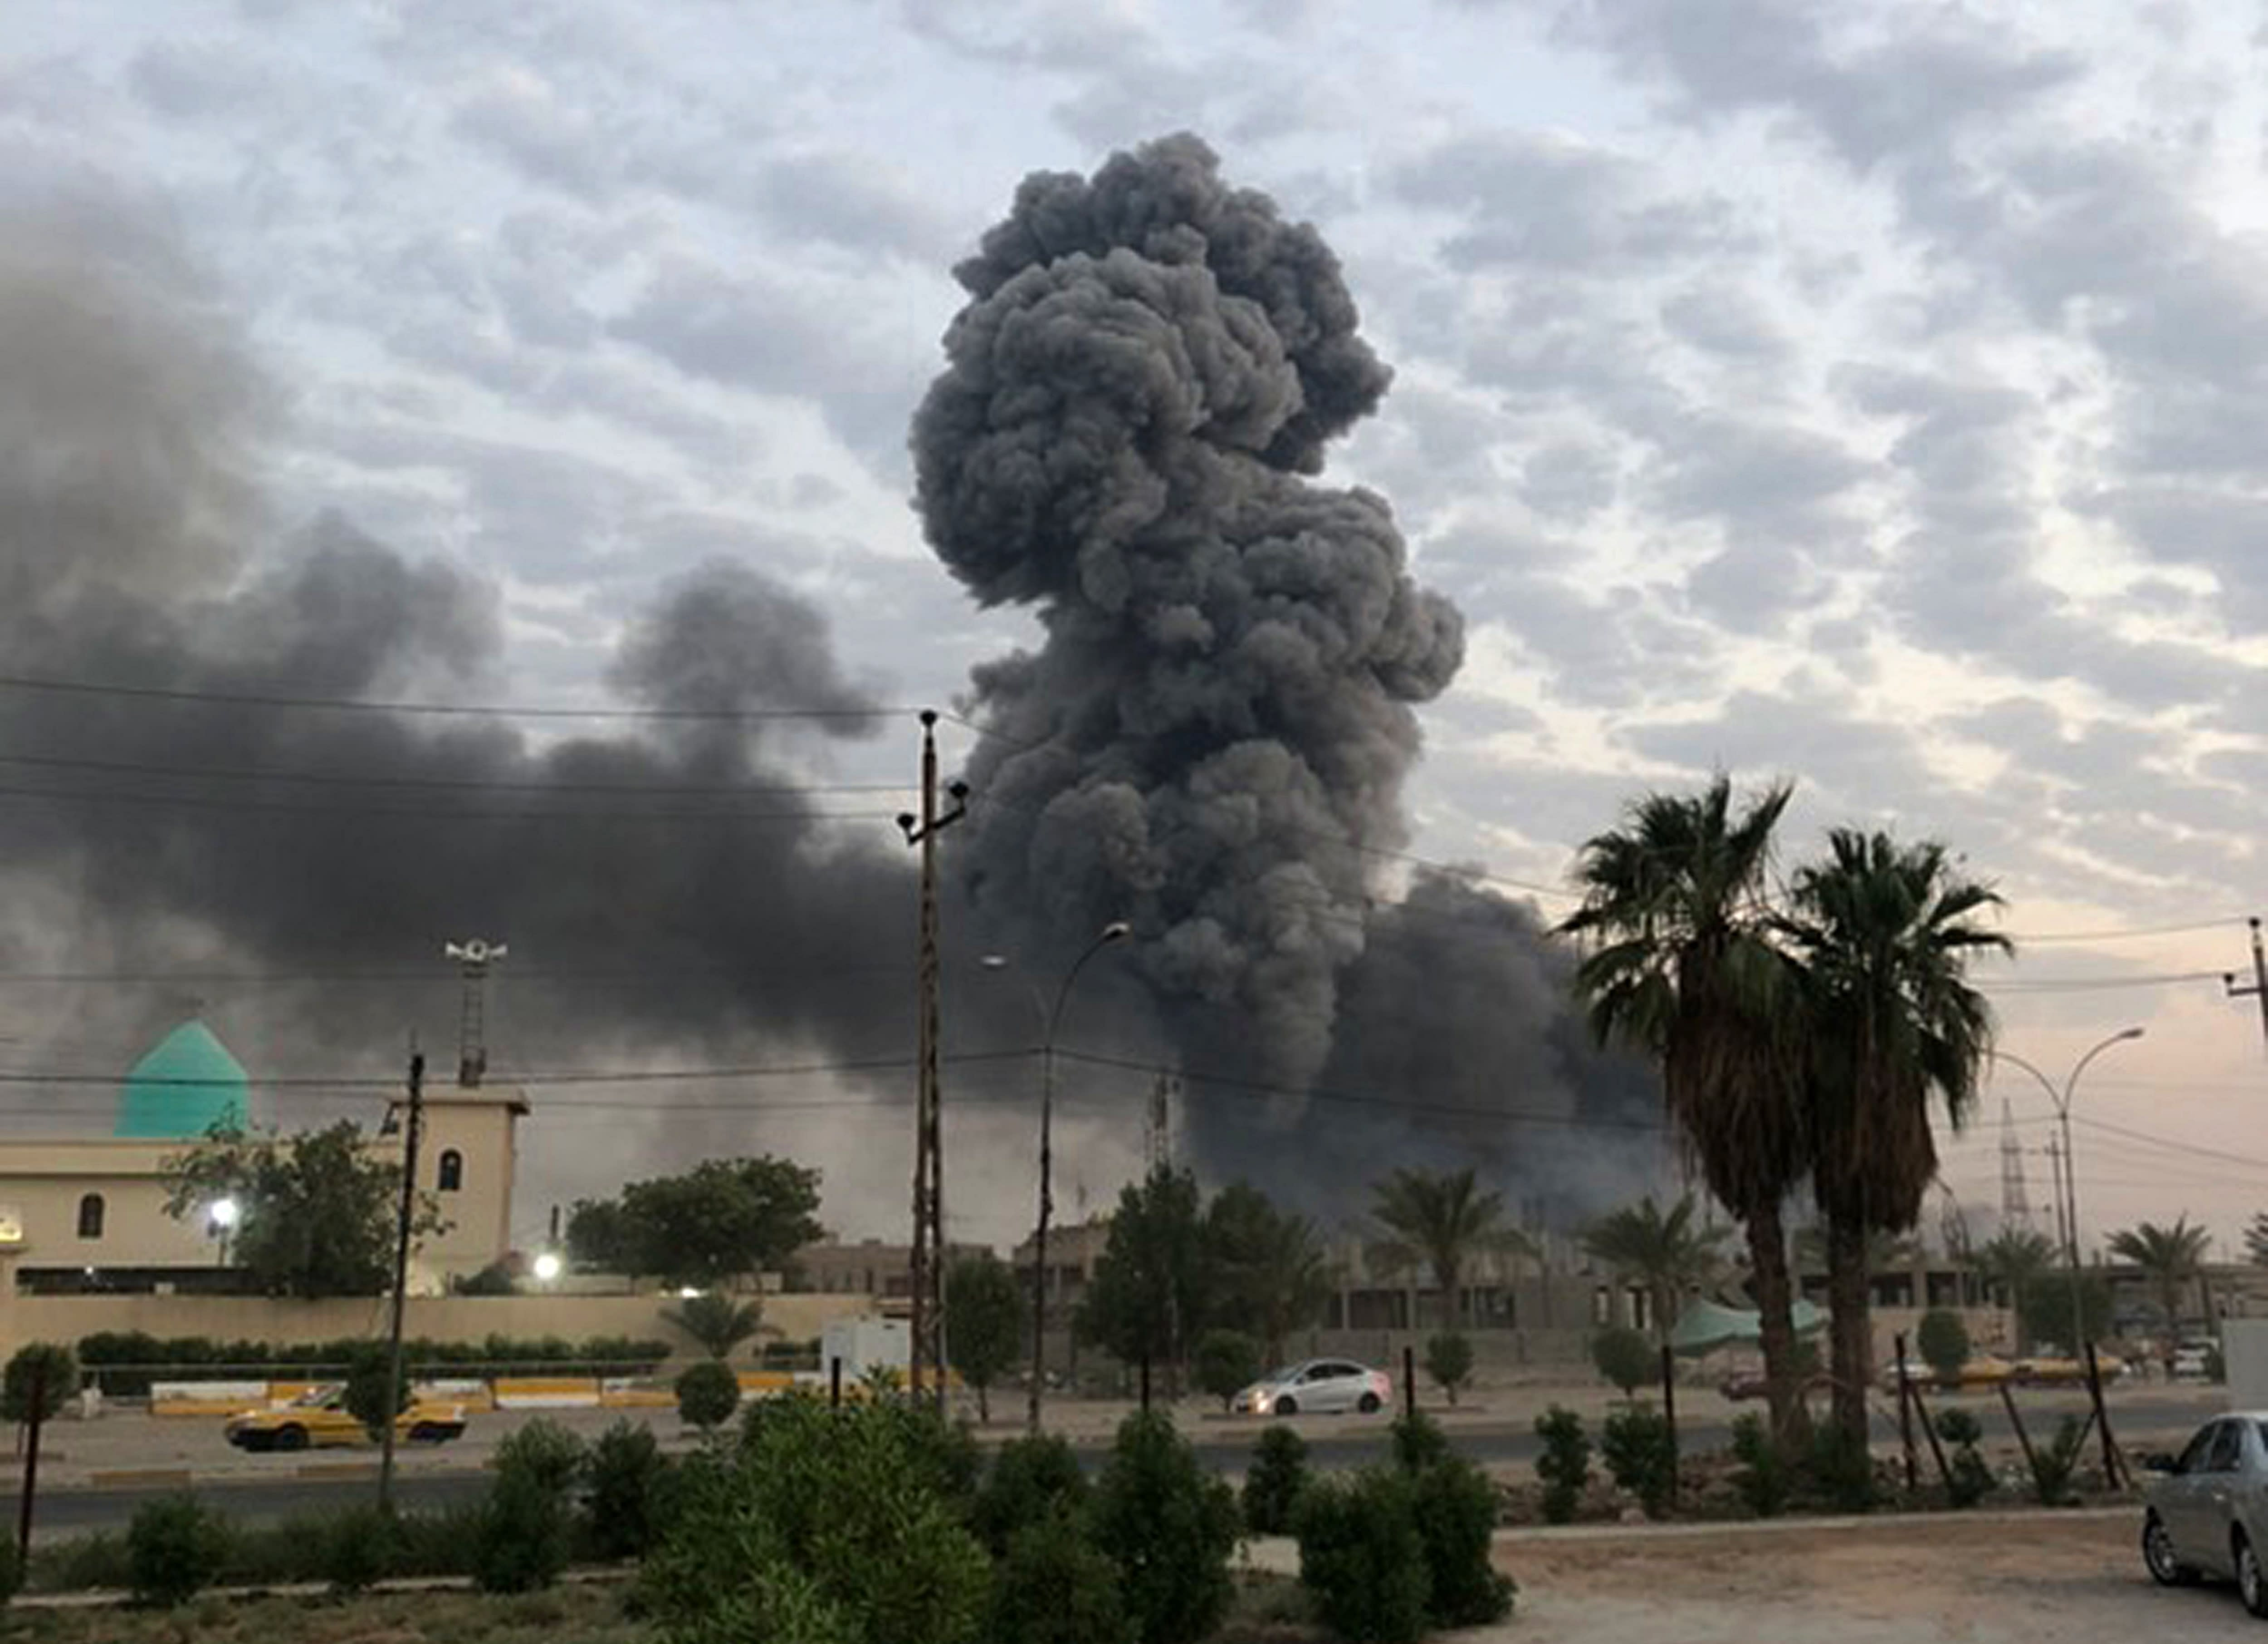 FILE - In this Monday, Aug. 12, 2019 file photo, plumes of smoke rise after an explosion at a military base southwest of Baghdad, Iraq. A fact-finding committee appointed by the Iraqi government to investigate a massive munitions depot explosion near the capital Baghdad has concluded that the blast was the result of a drone strike. A copy of the report was obtained by The Associated Press Wednesday, Aug. 21, 2019. (AP Photo/Loay Hameed, File)